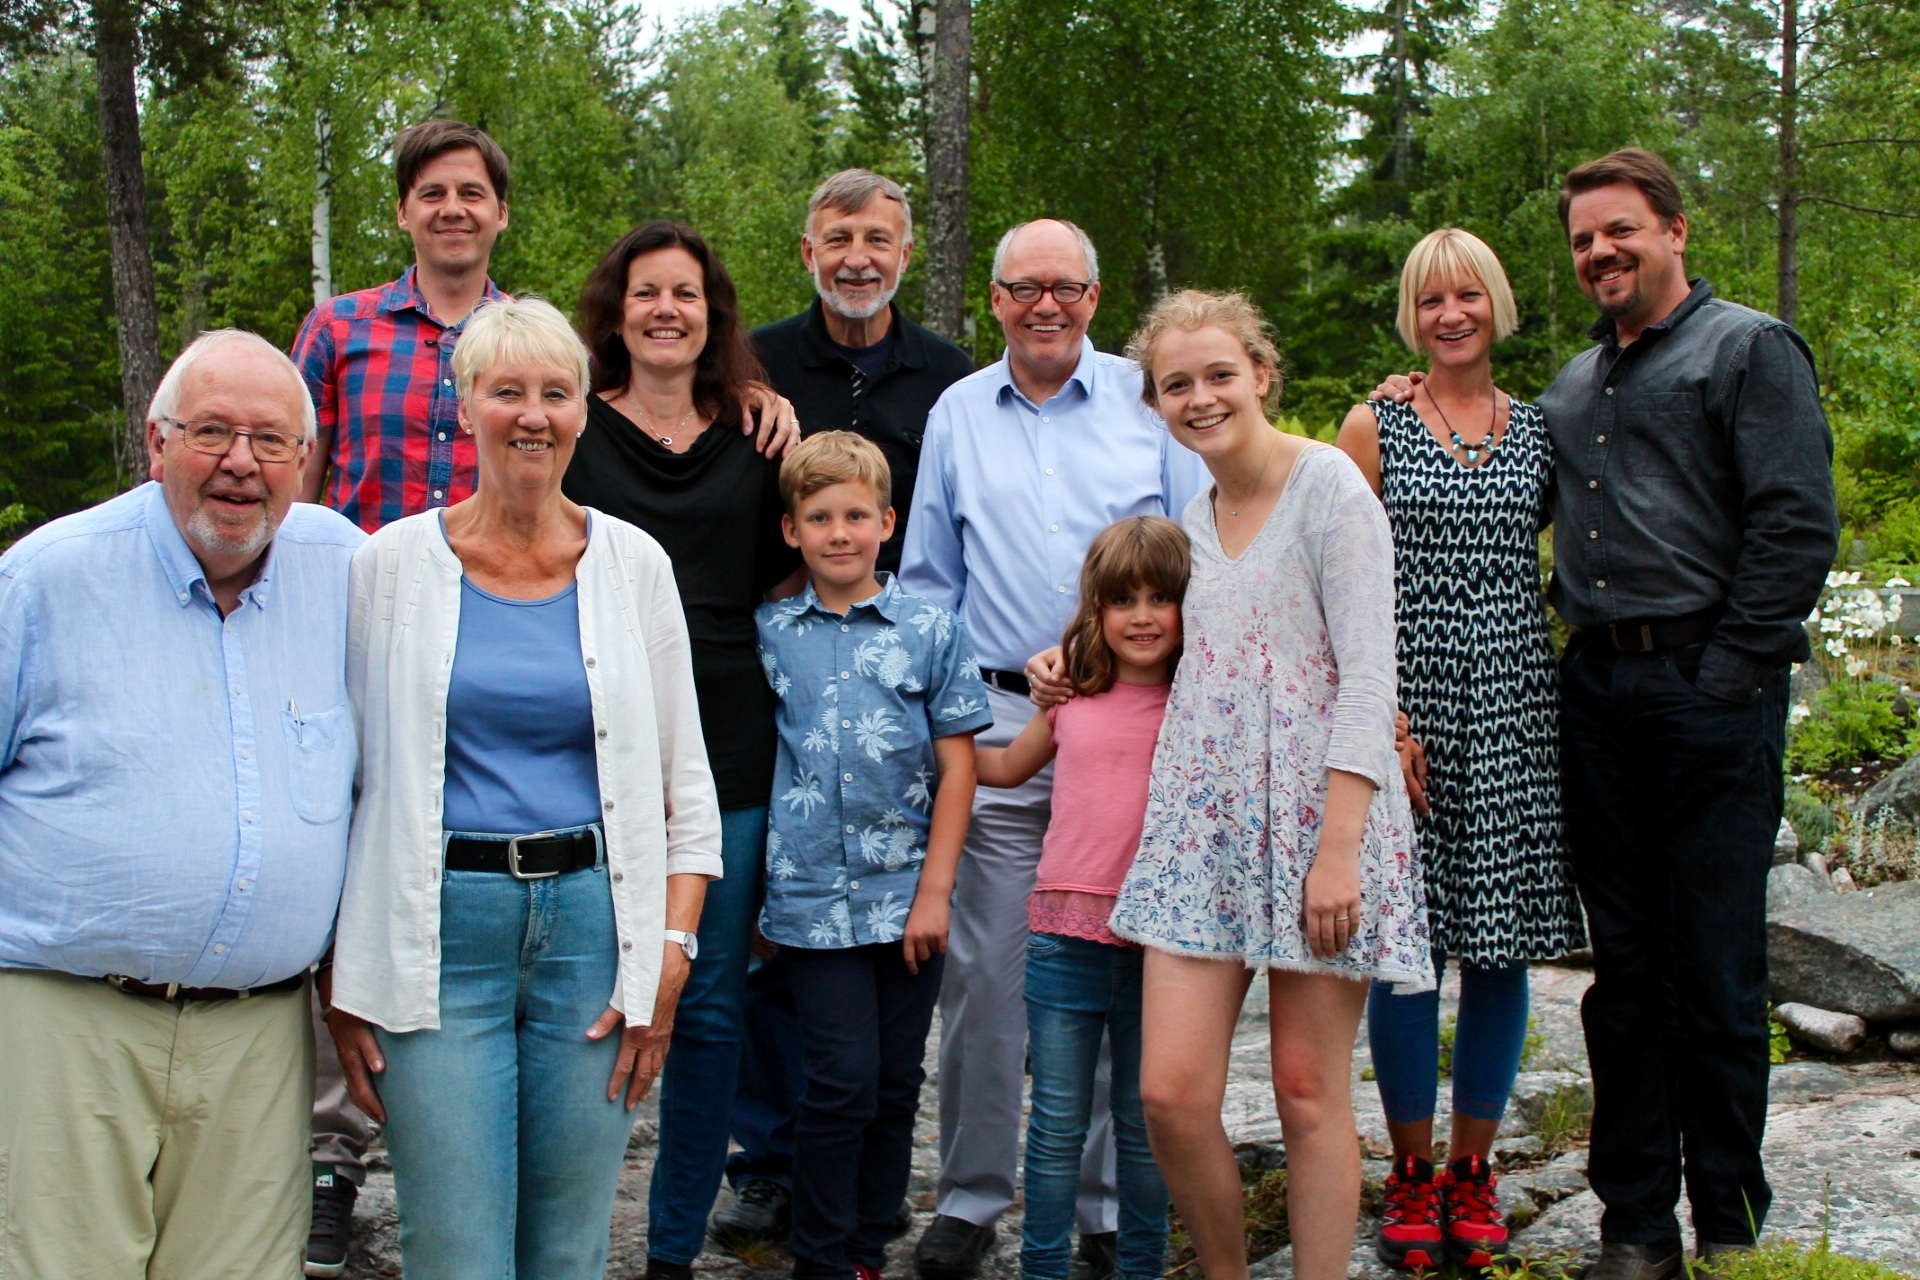 Hangin' with my Swedish family in Gävle